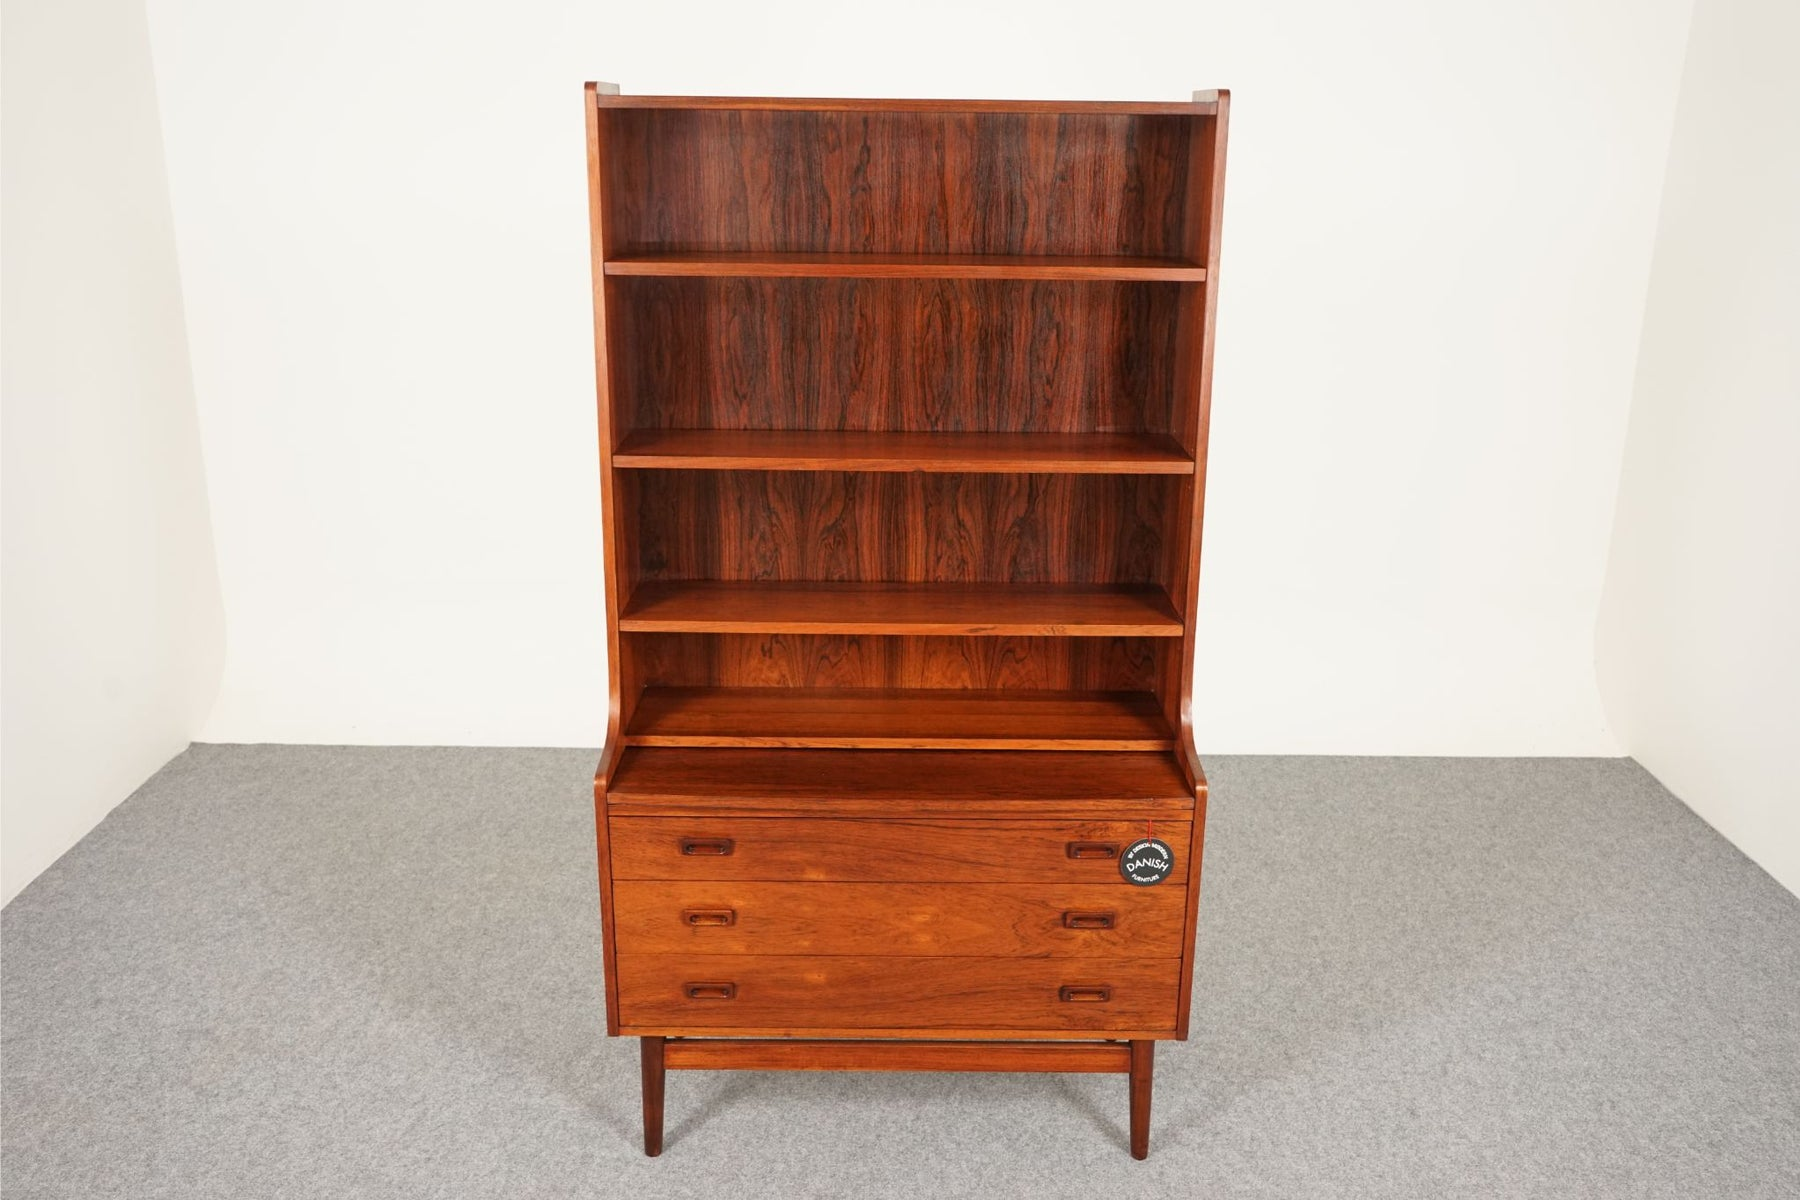 A Mid Century Bookcase Made With Rosewood By Johannes Sorth For Nexo - (312-078)